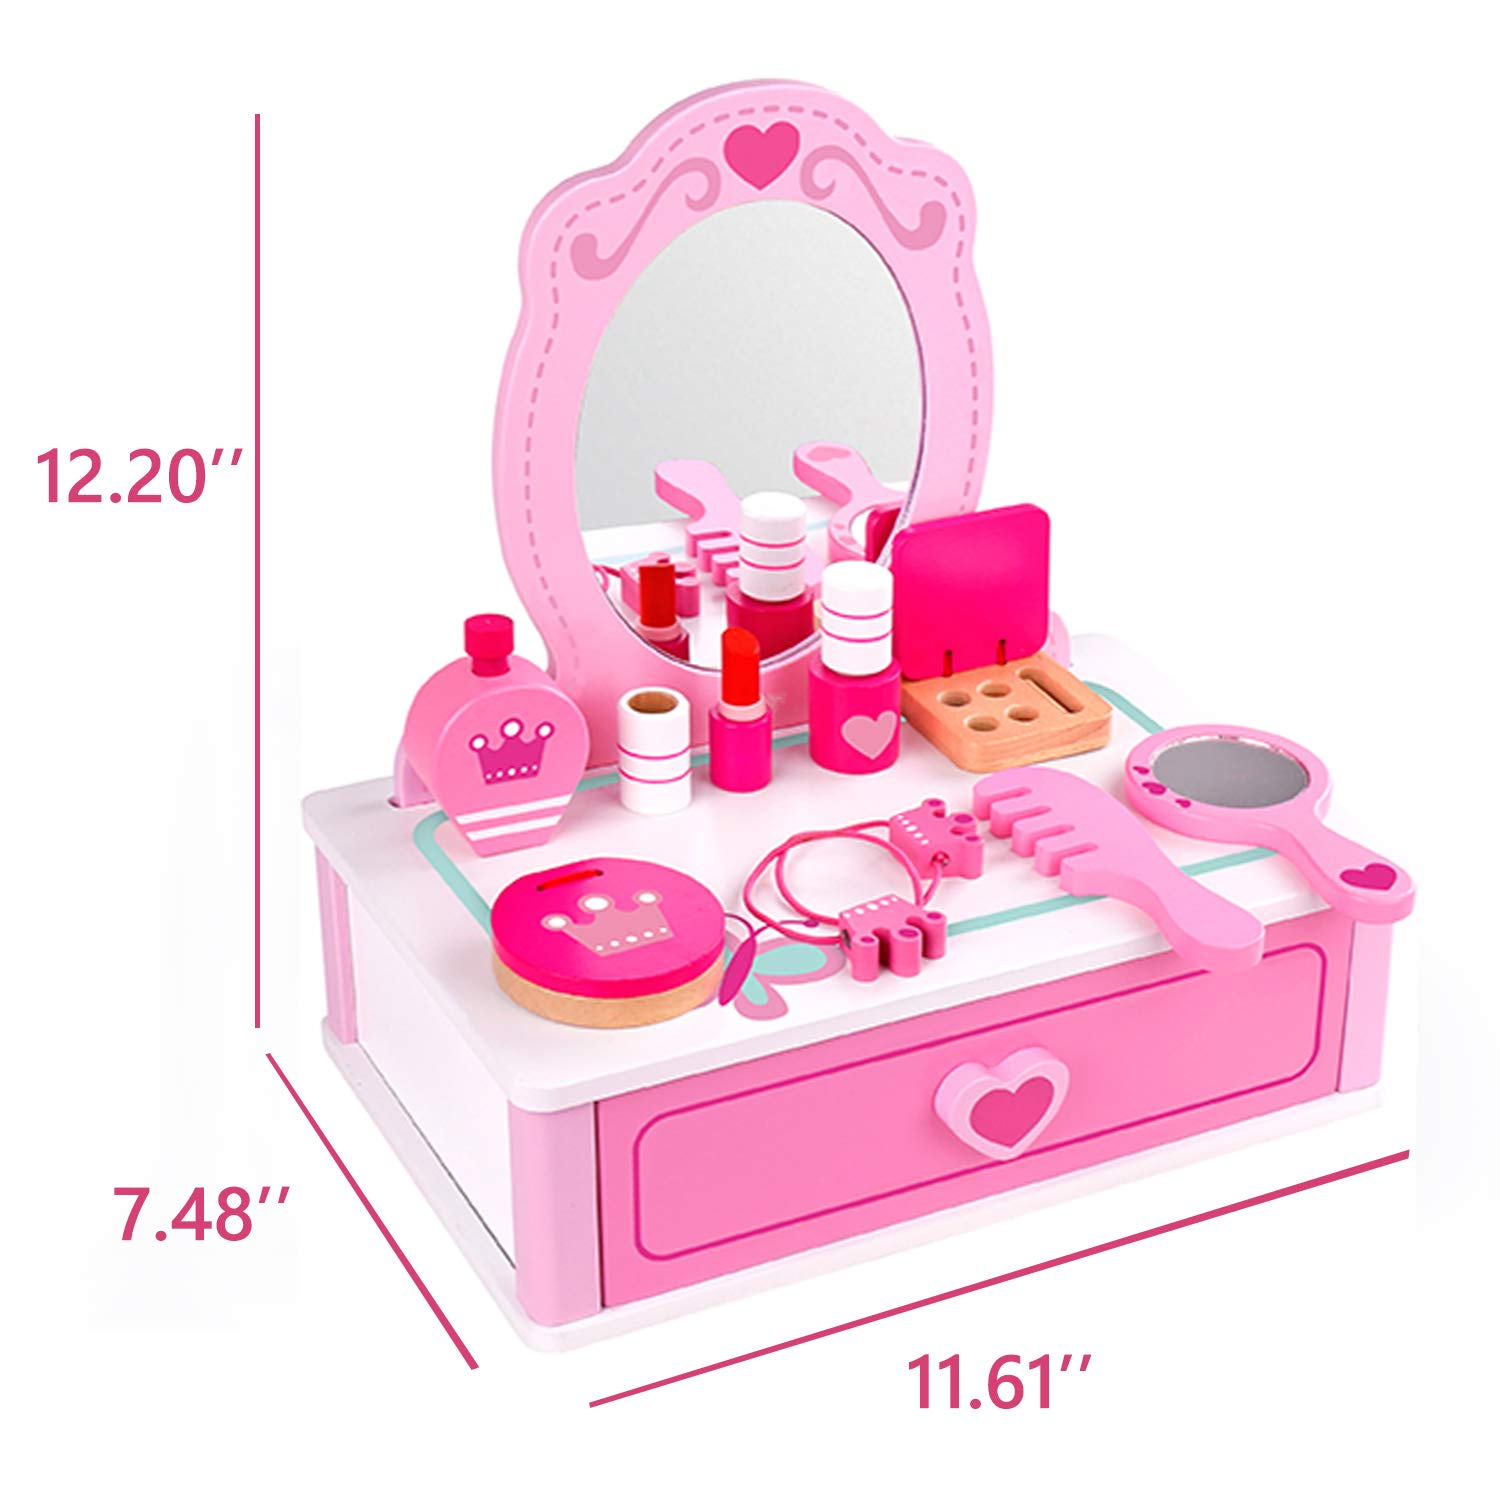 Wooden Dresser Vanity Beauty Set, Makeup Accessories with Mirror, Salon Fashion Cosmetic Pretend 15 Piece / pcs Play Toy for Children by CharaHome (Image #6)